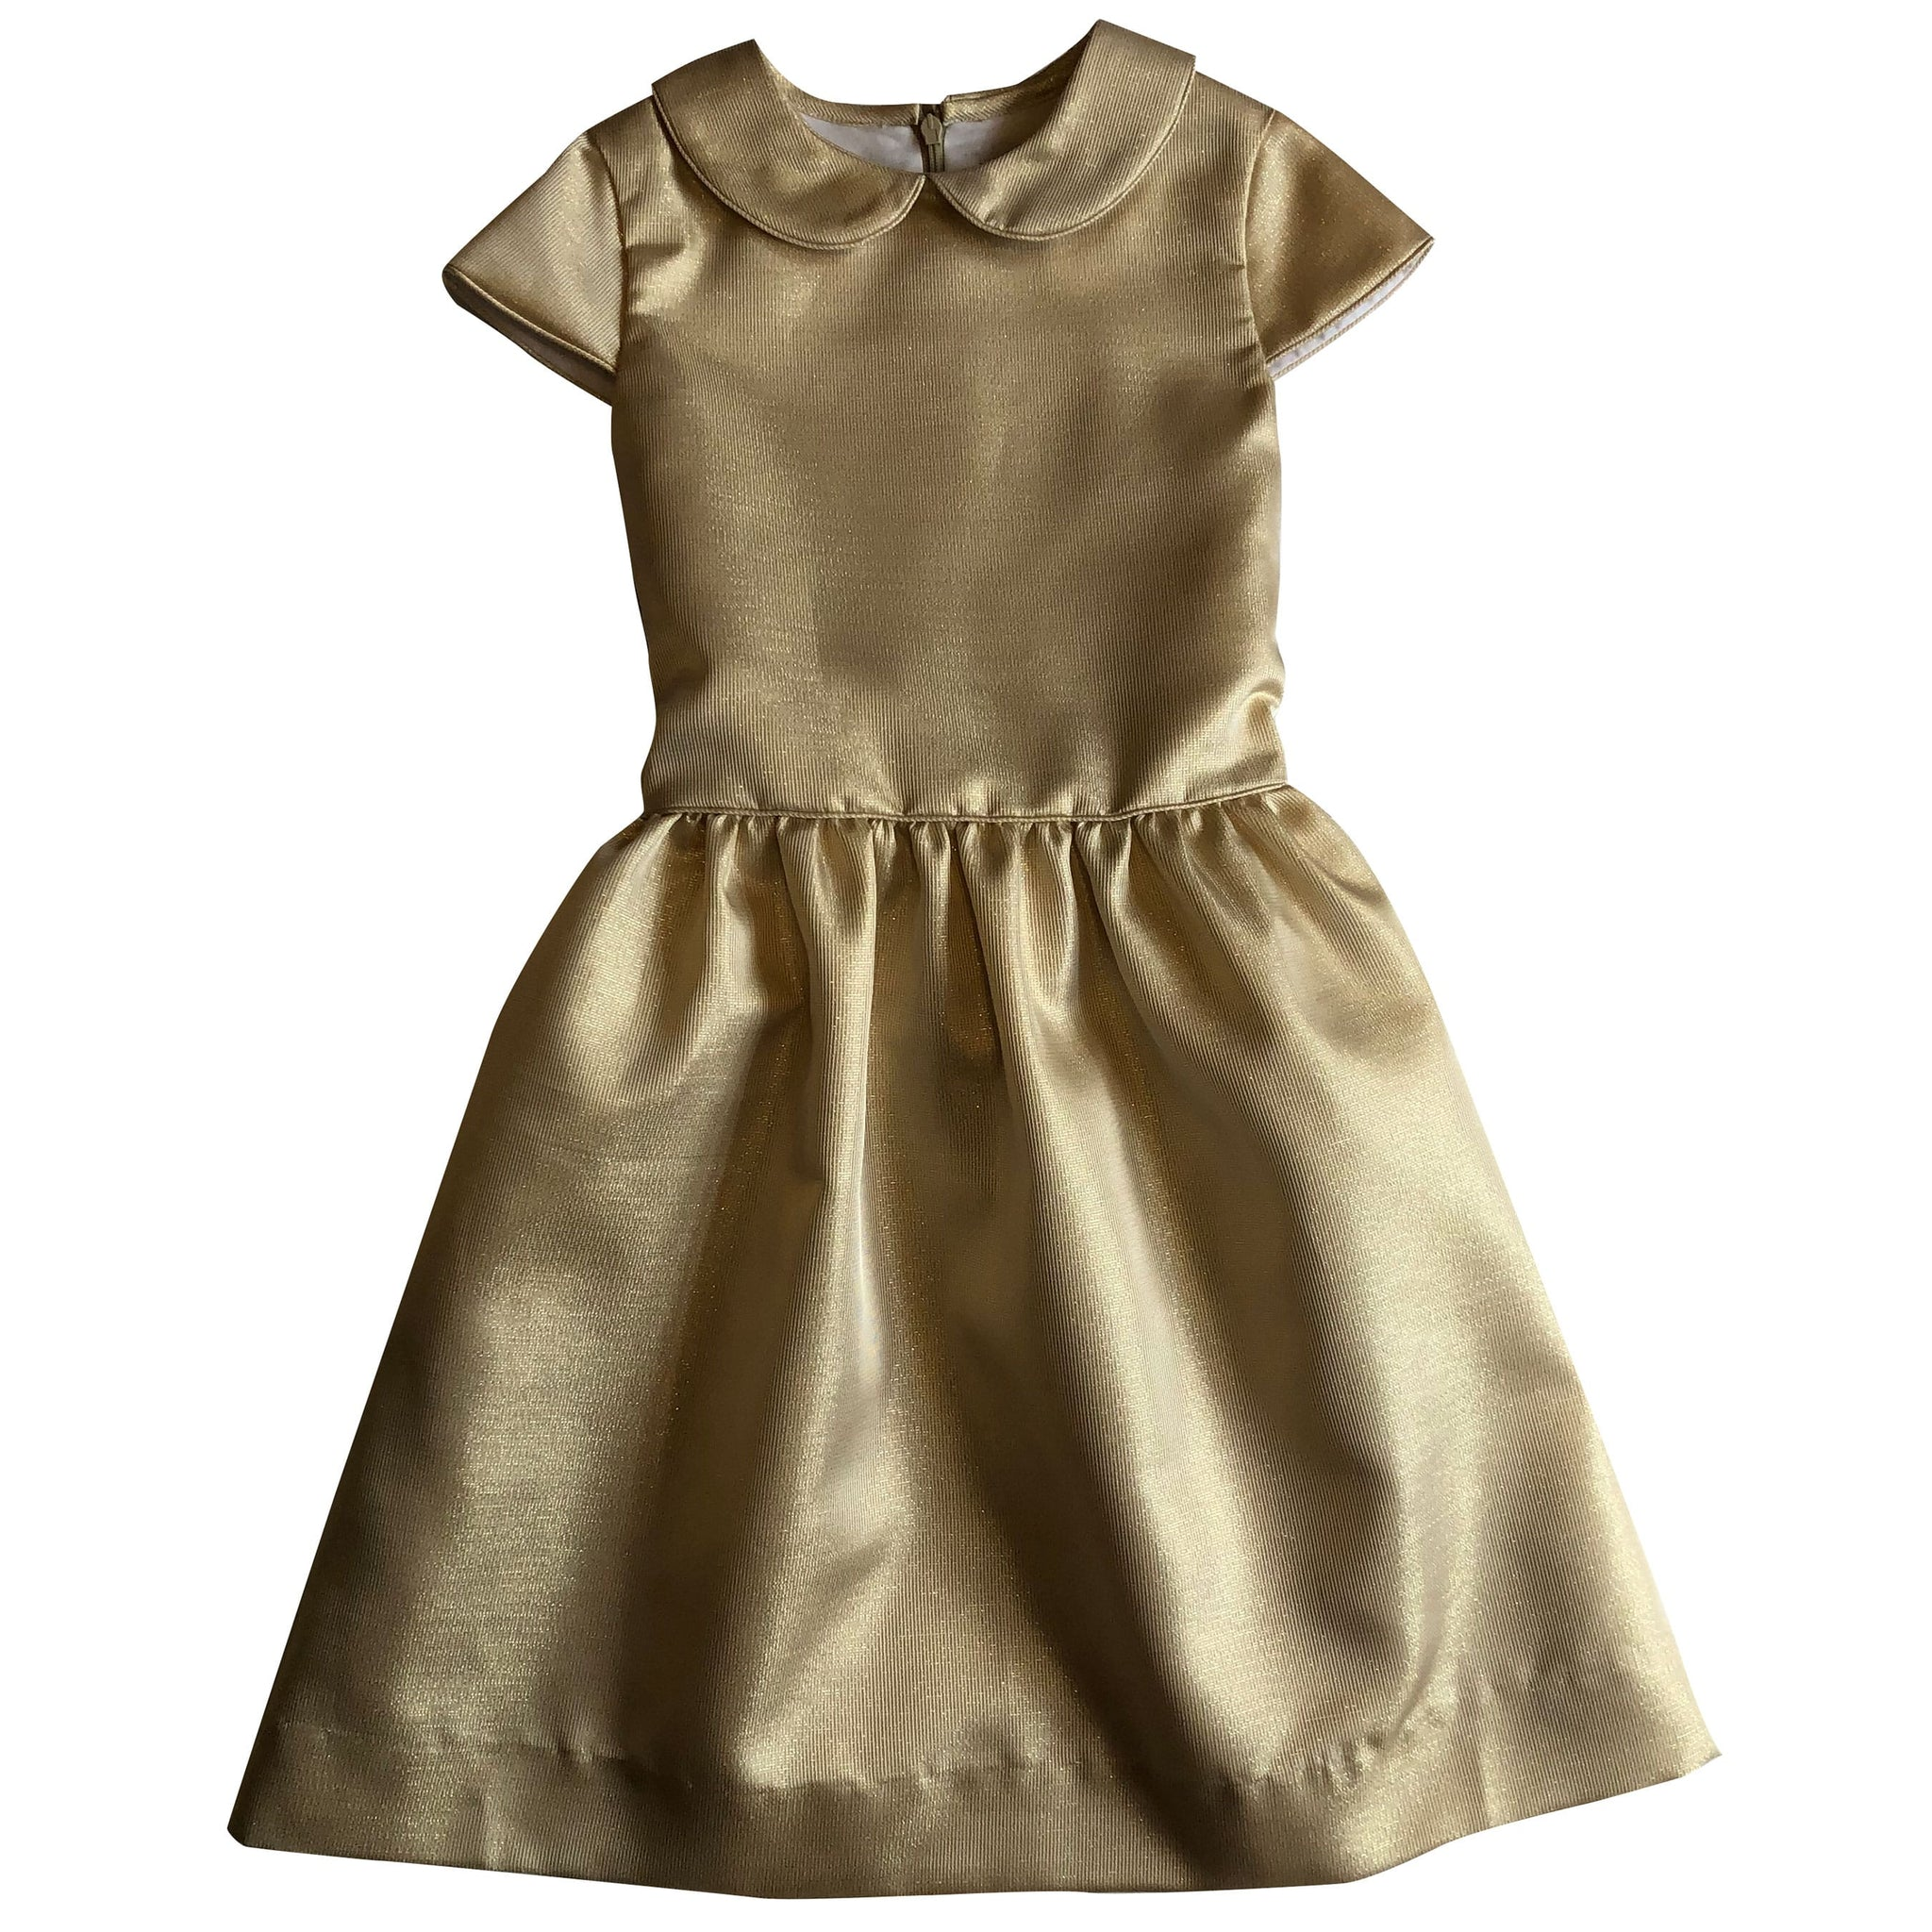 anna peter pan collar dress gold shimmer